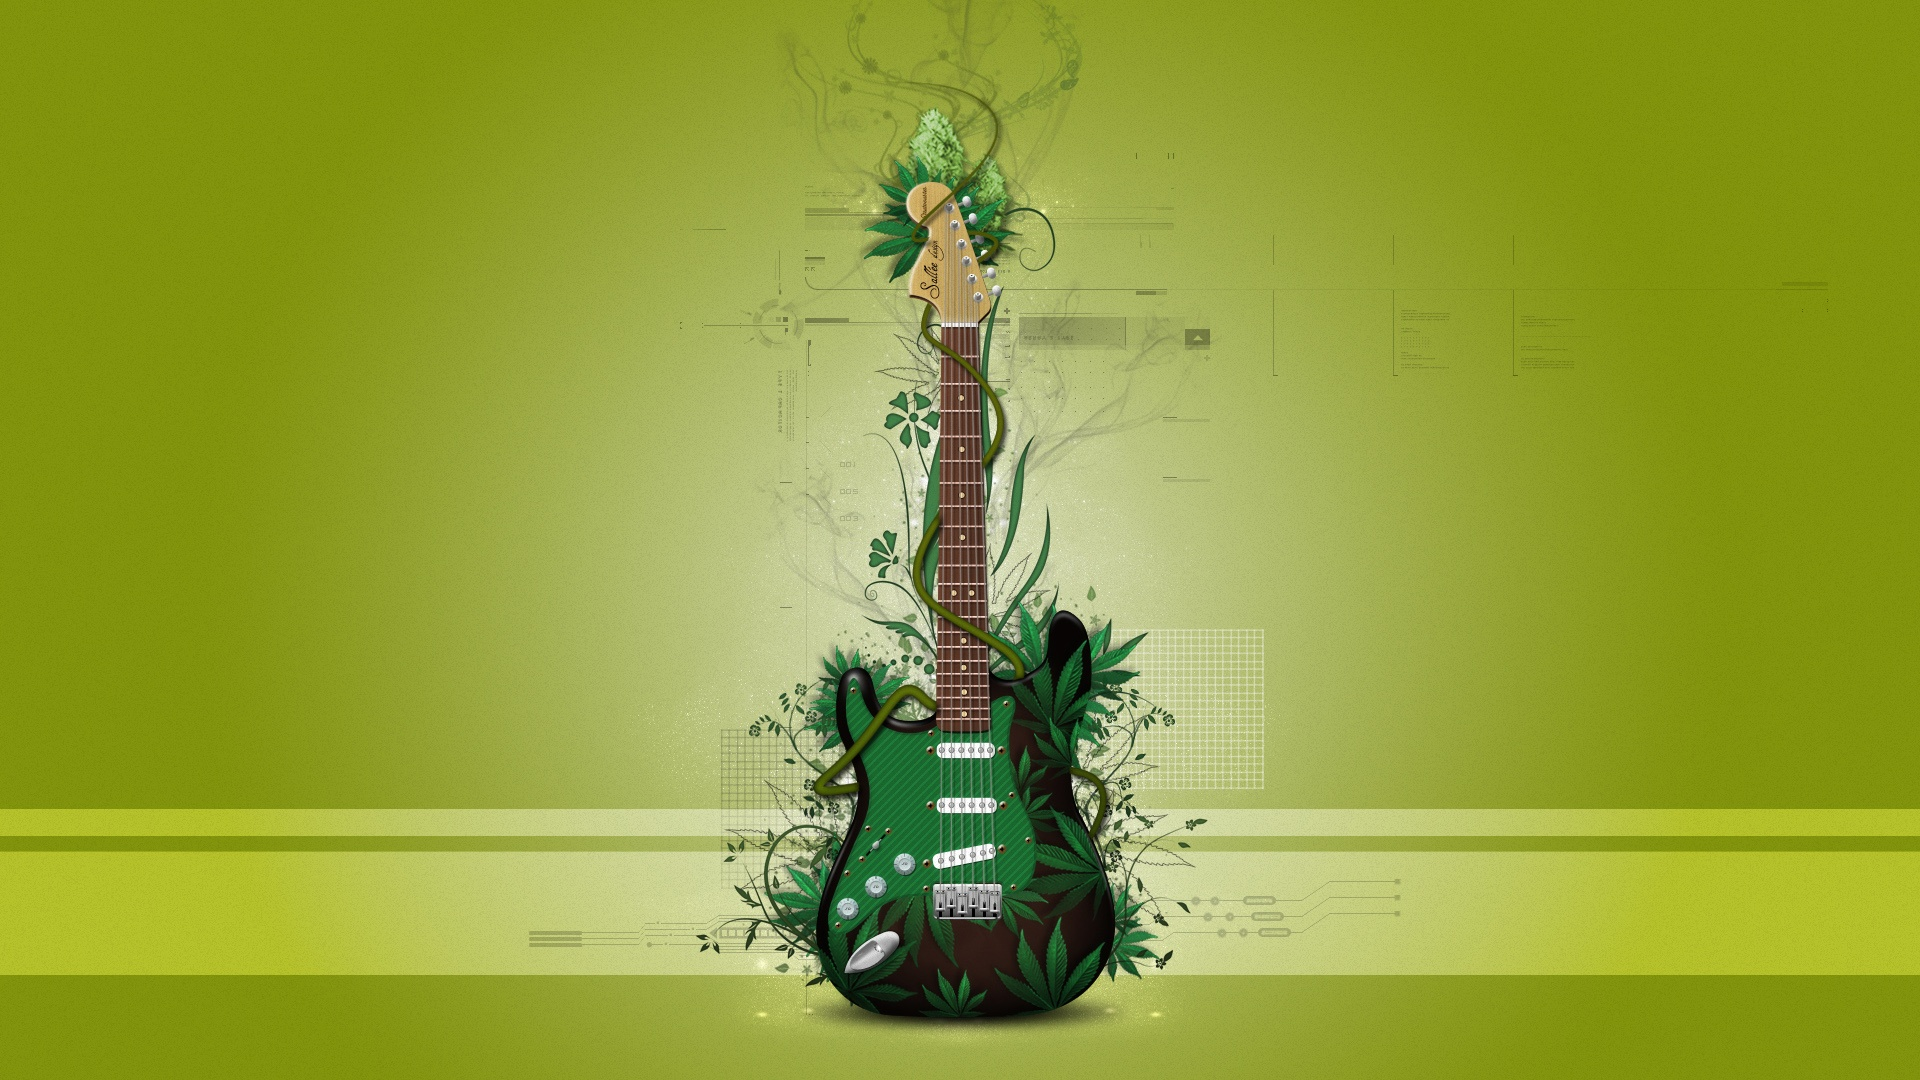 guitar wallpaper for my desktop wallpapersafari